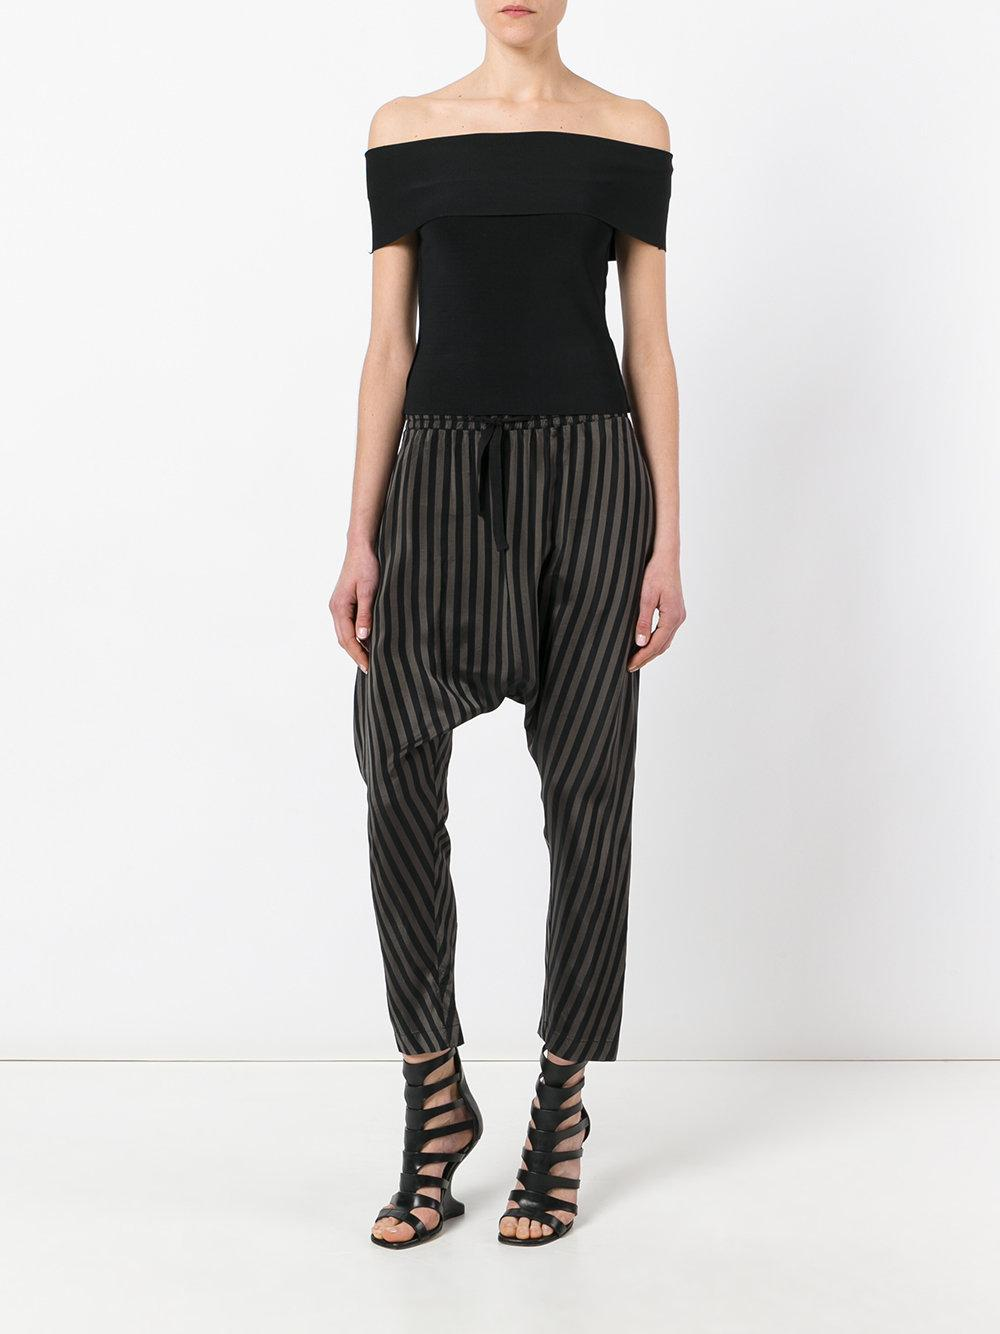 Nude Striped Drop-Crotch Trousers In Black  Lyst-6566